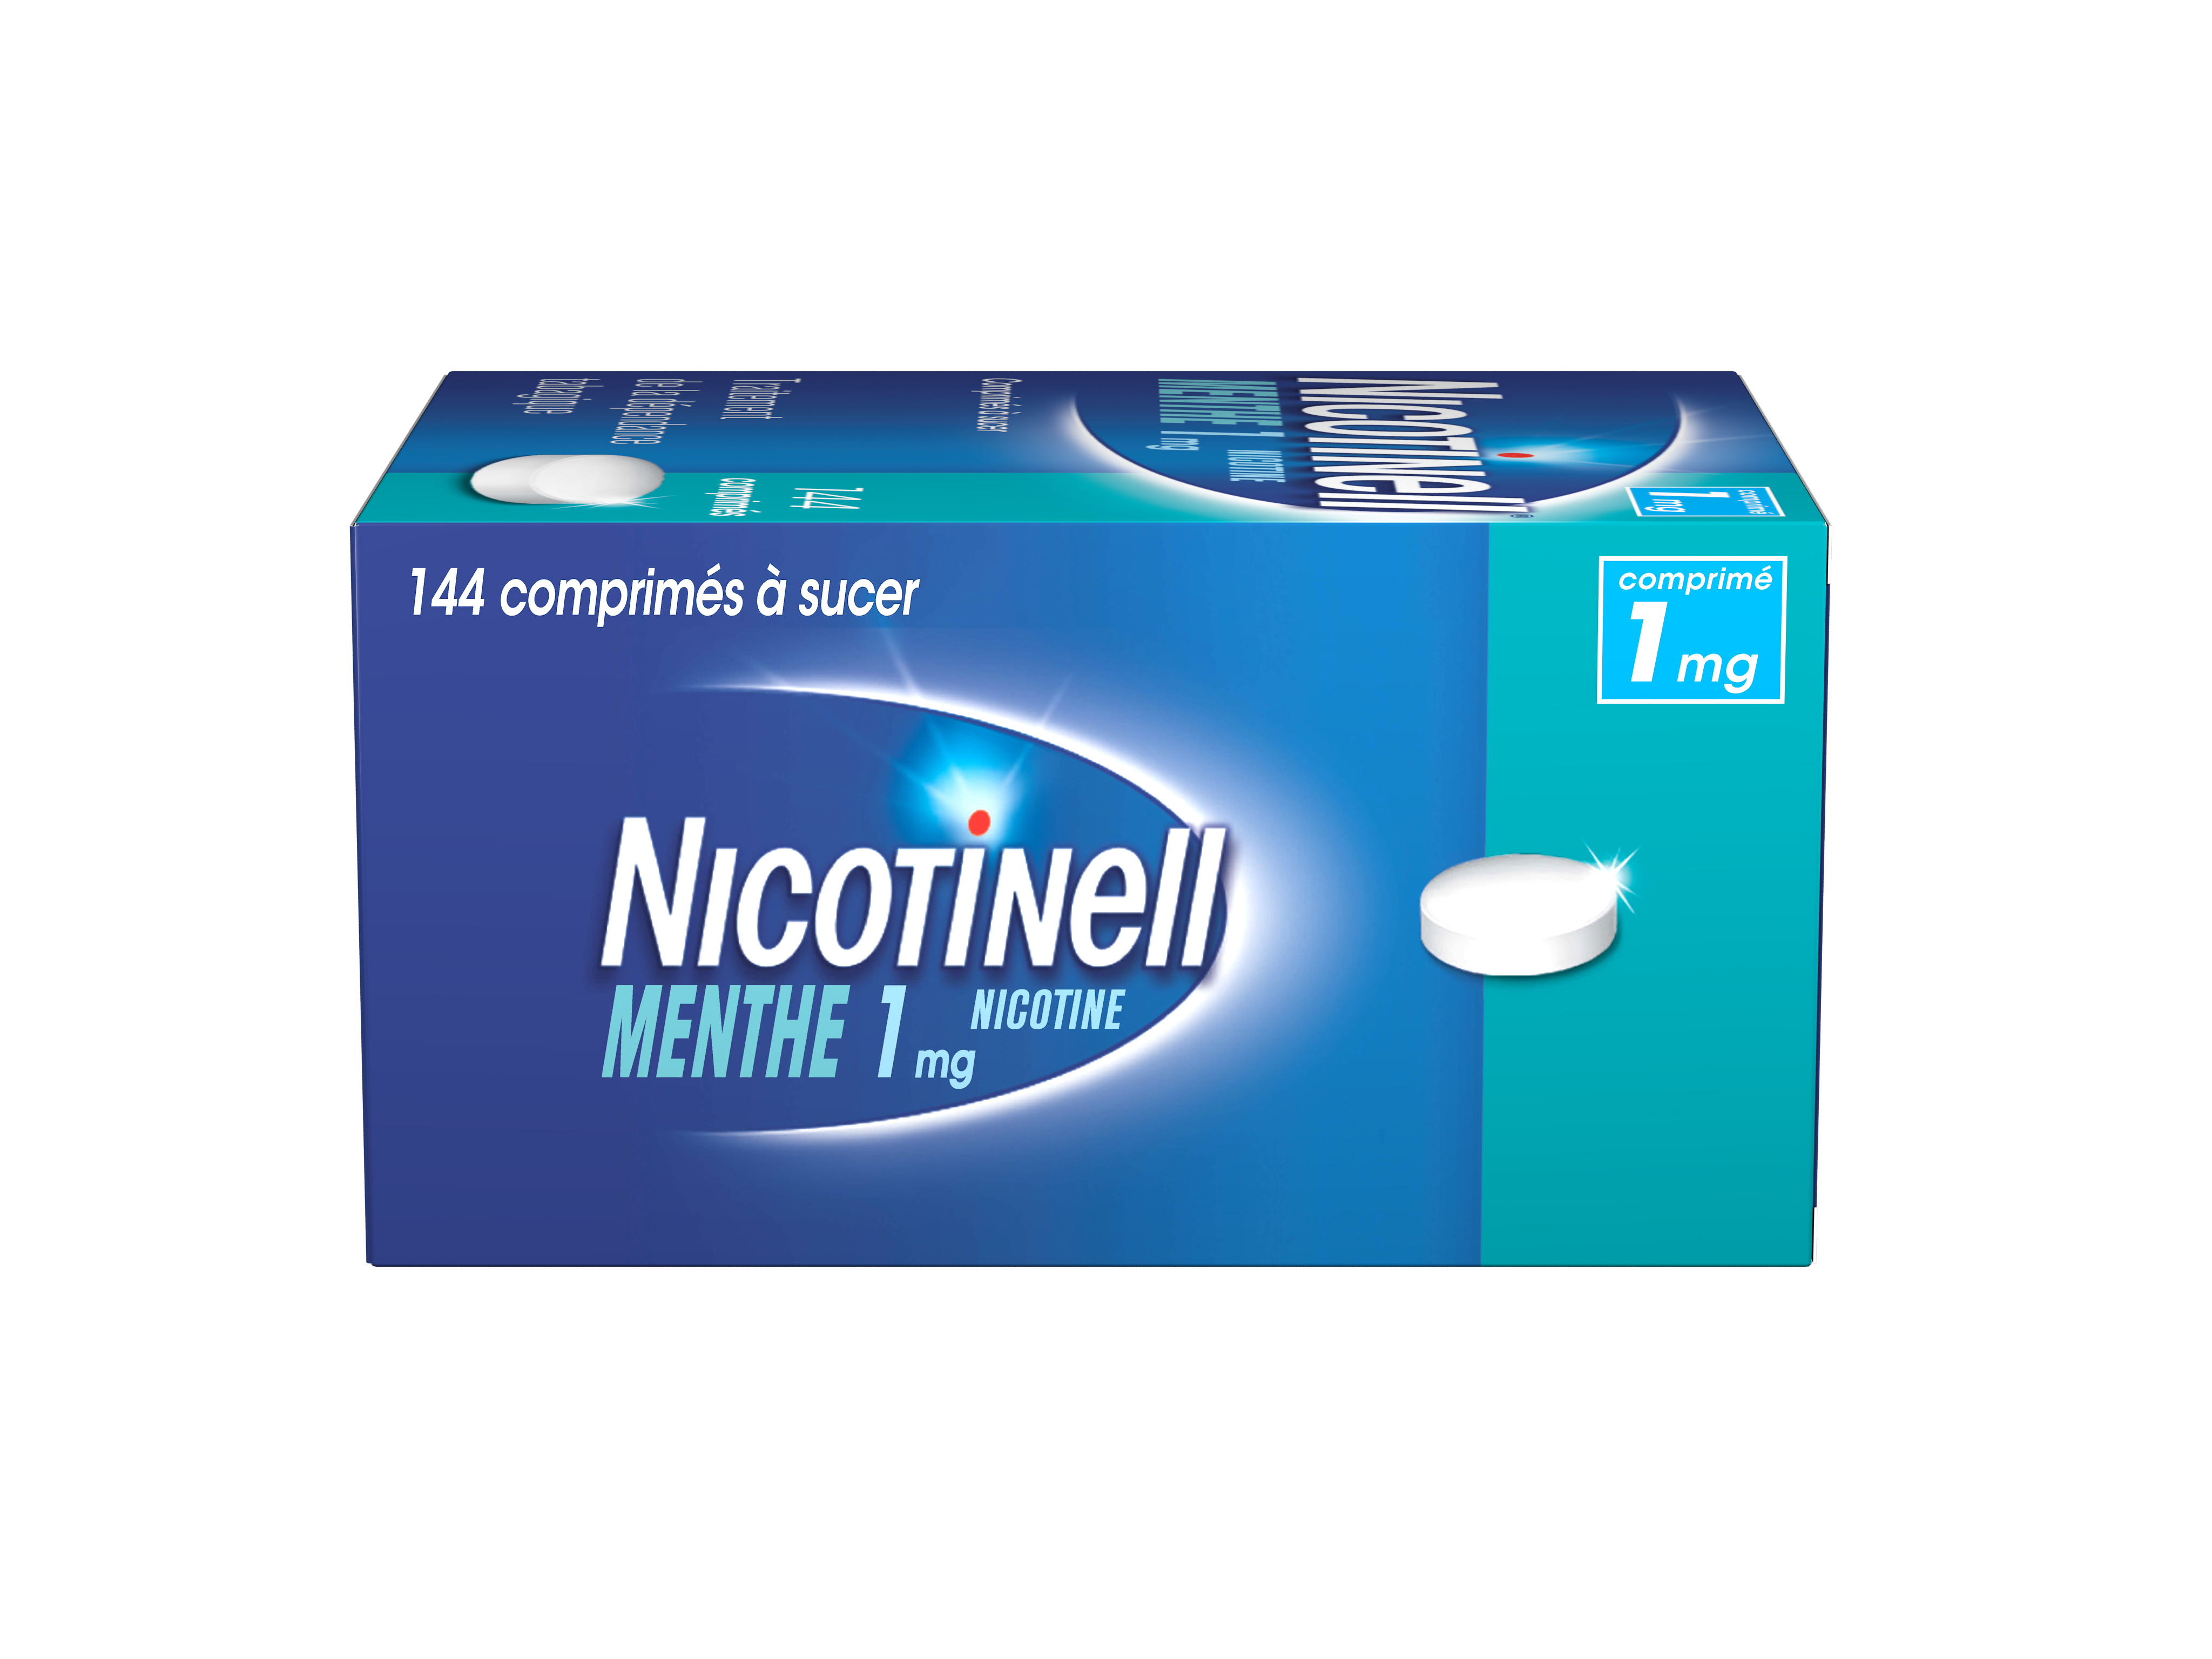 Image NICOTINELL 1 mg Cpr à sucer menthe Plq/144